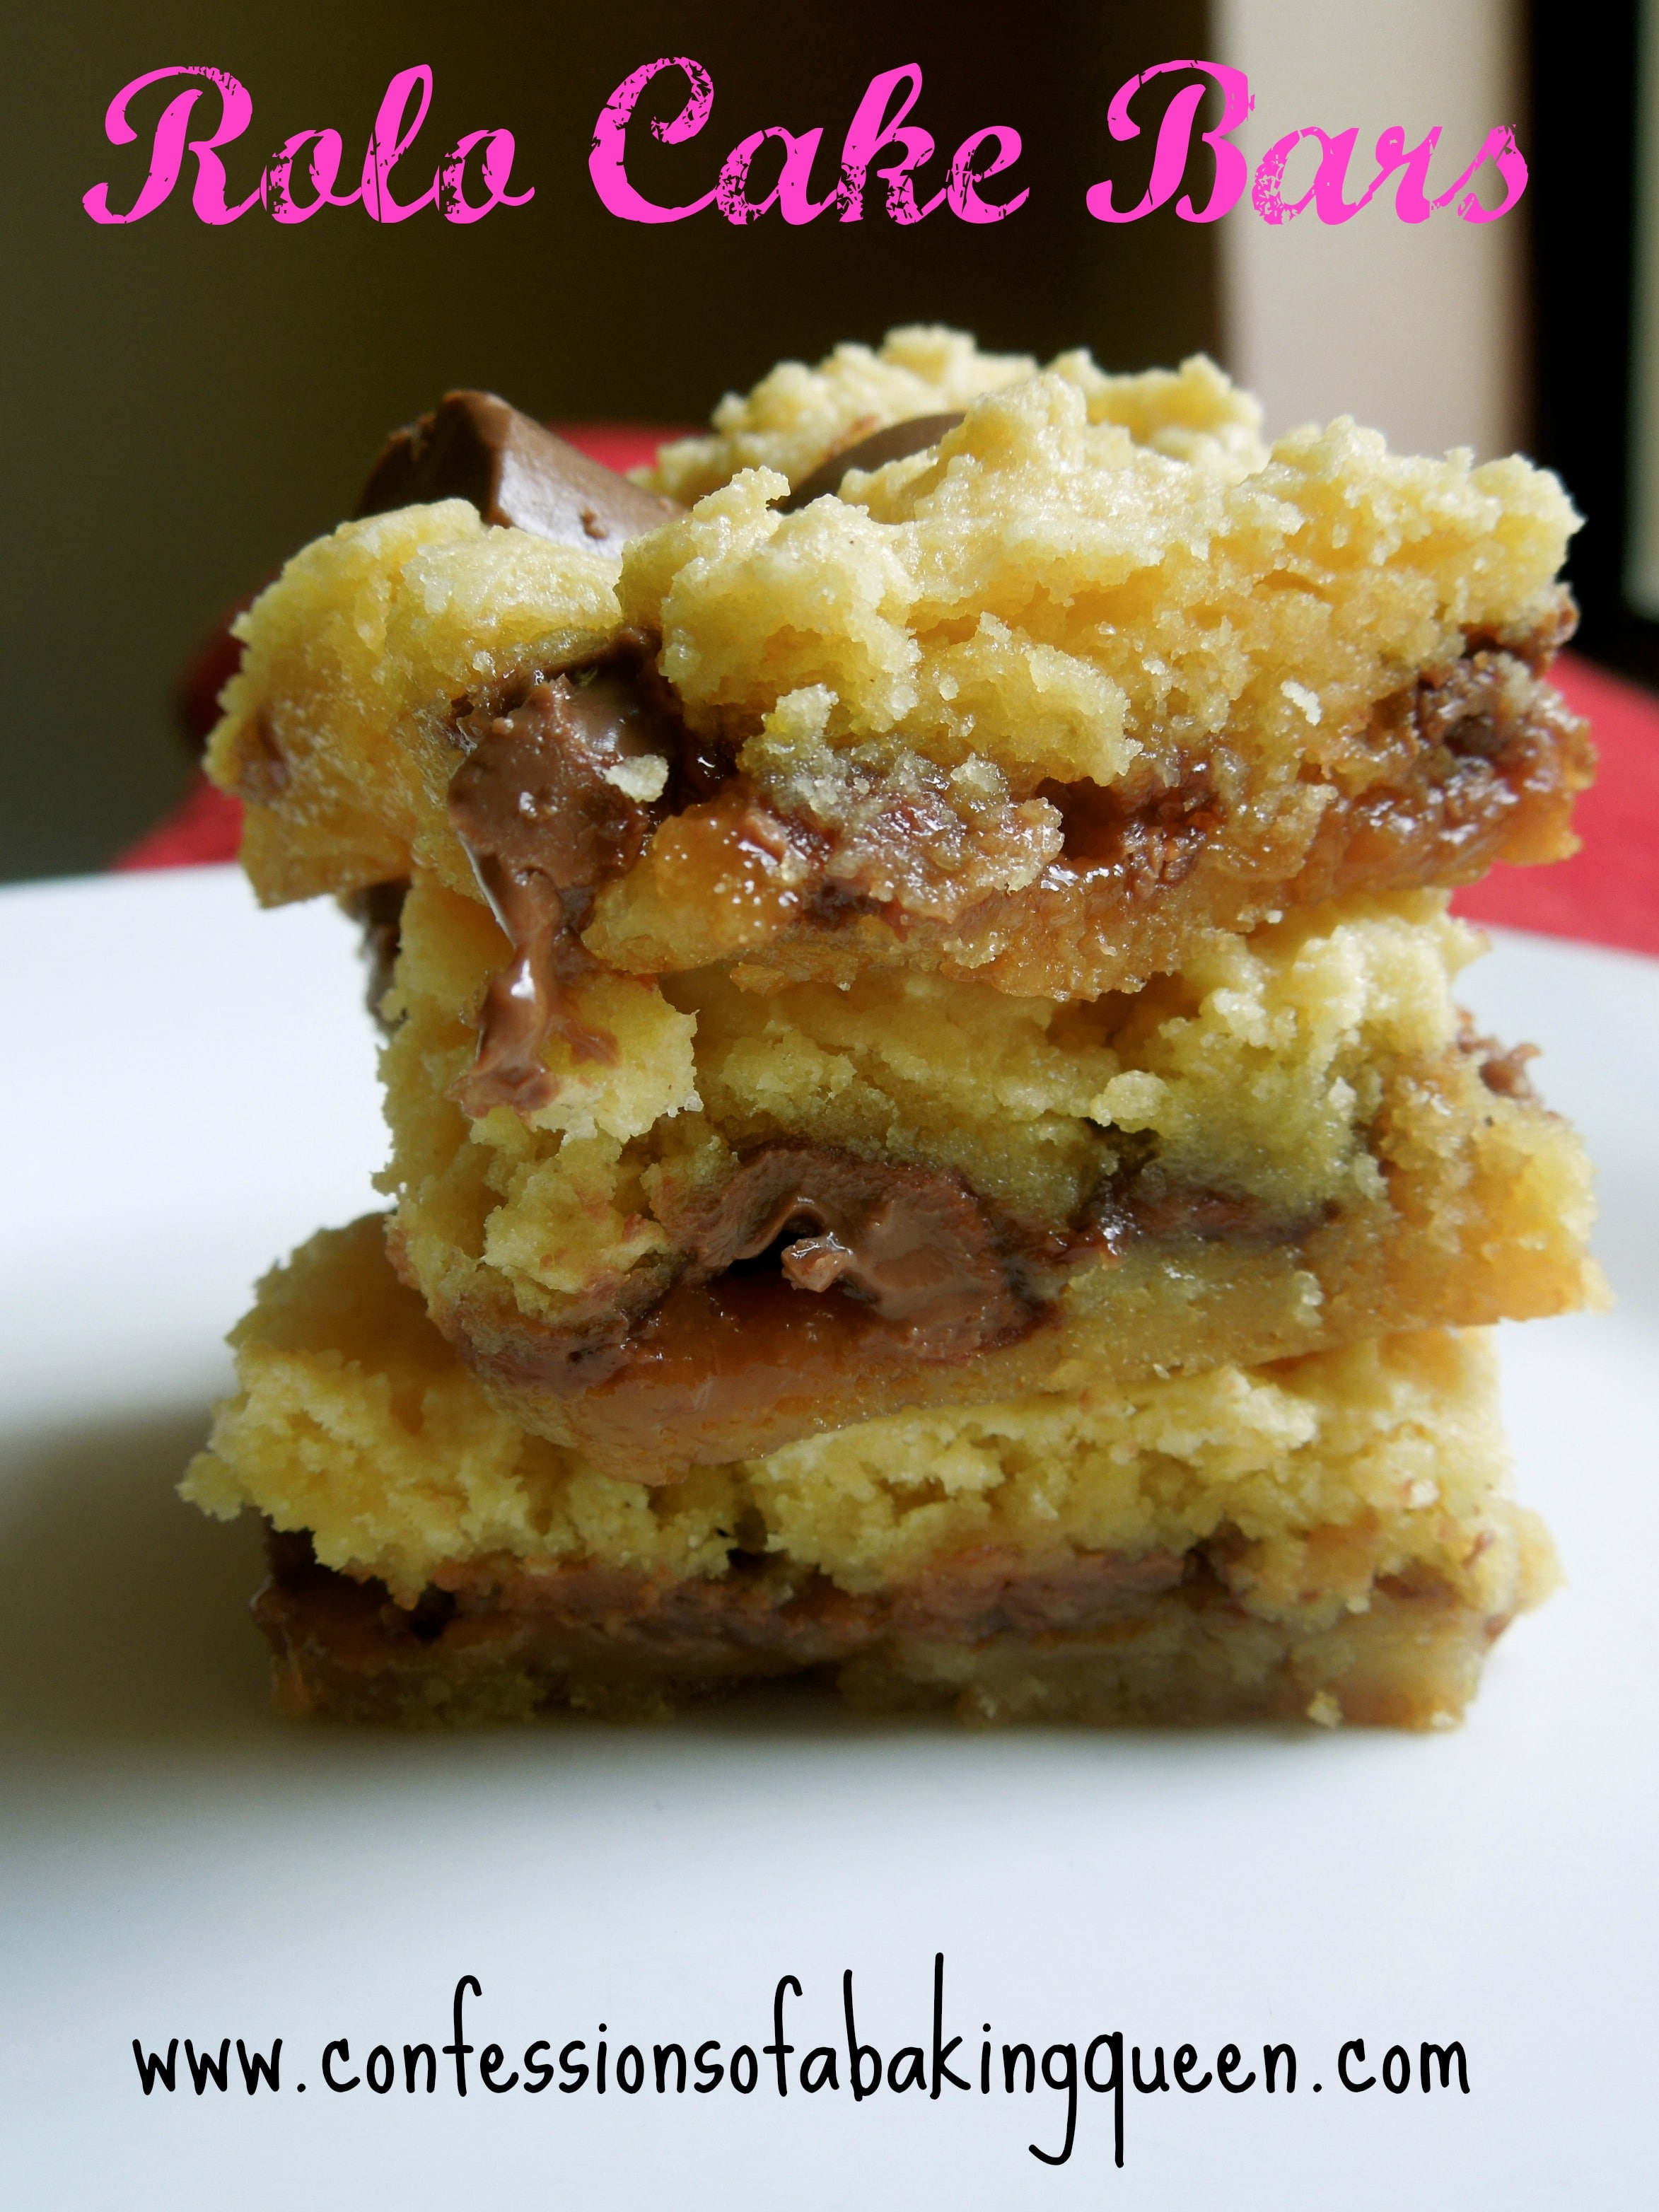 Rolo Cake Bars www.confessionsofabakingqueen.com